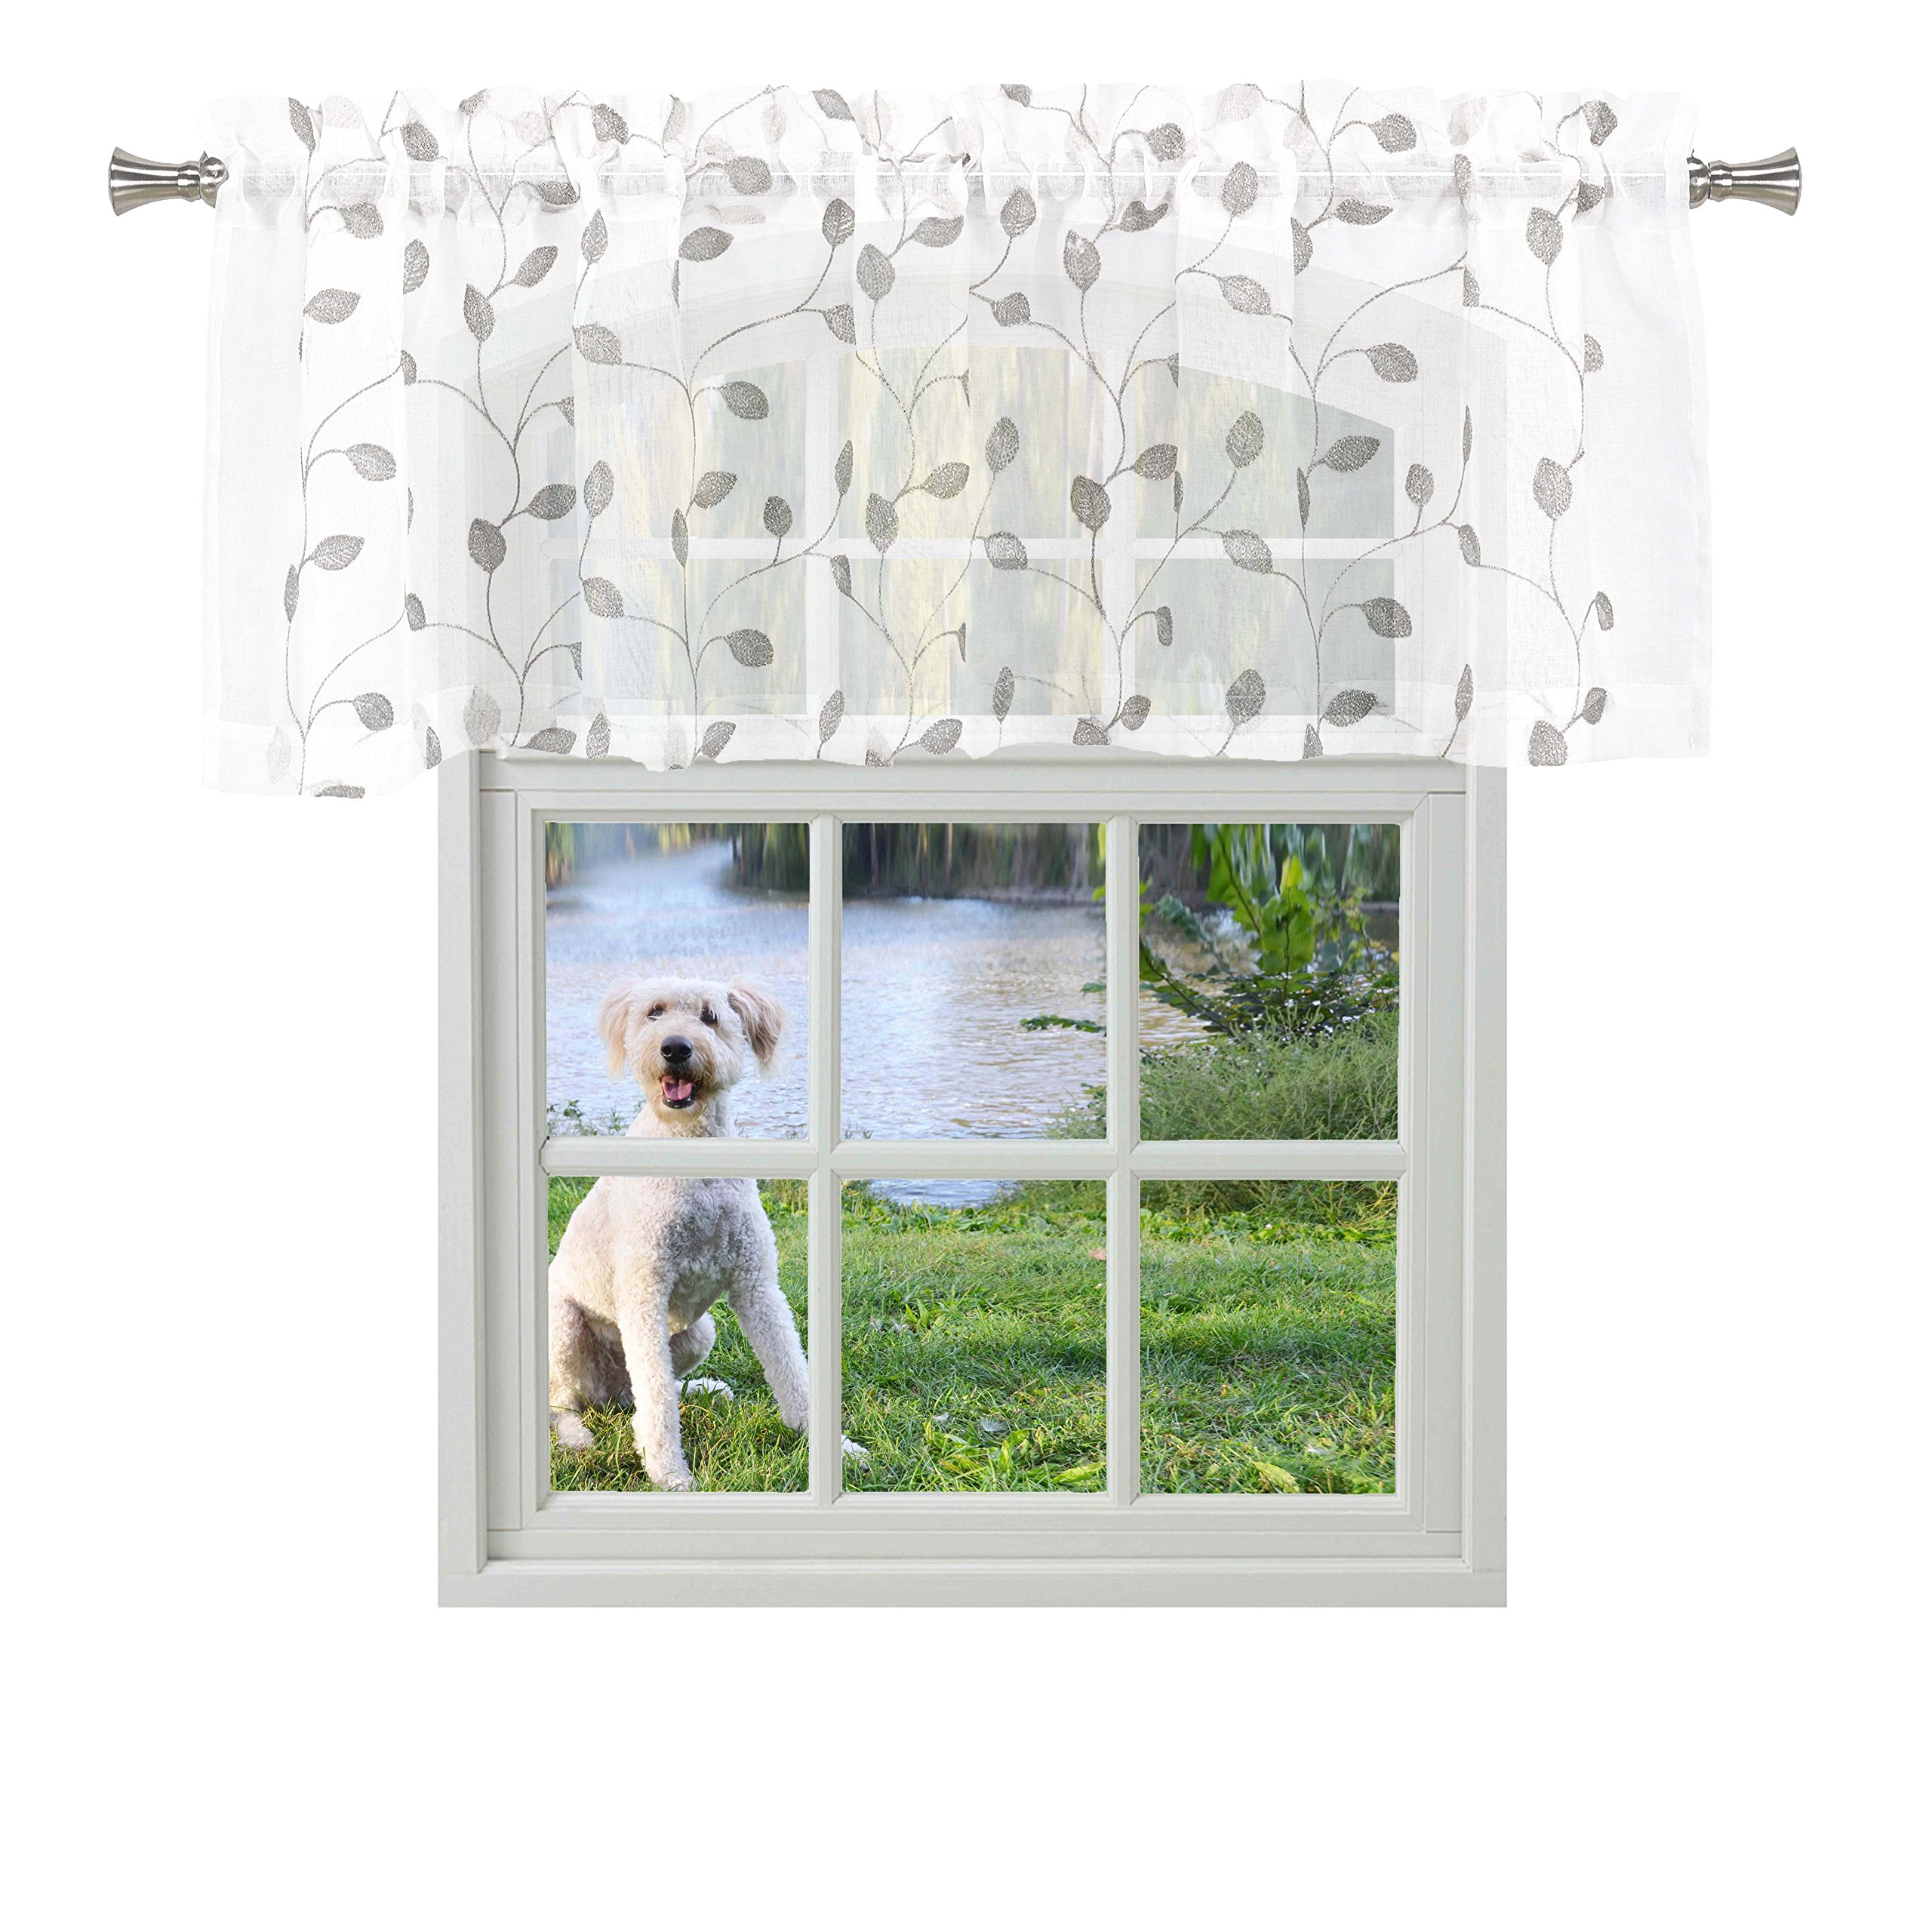 Bathroom and More KIRA Collection Pure White Sheer Window Curtain Valance with Embroidered Gray and Metallic Silver Leaf Design (Single (1) Valance 53in W x 15in L)